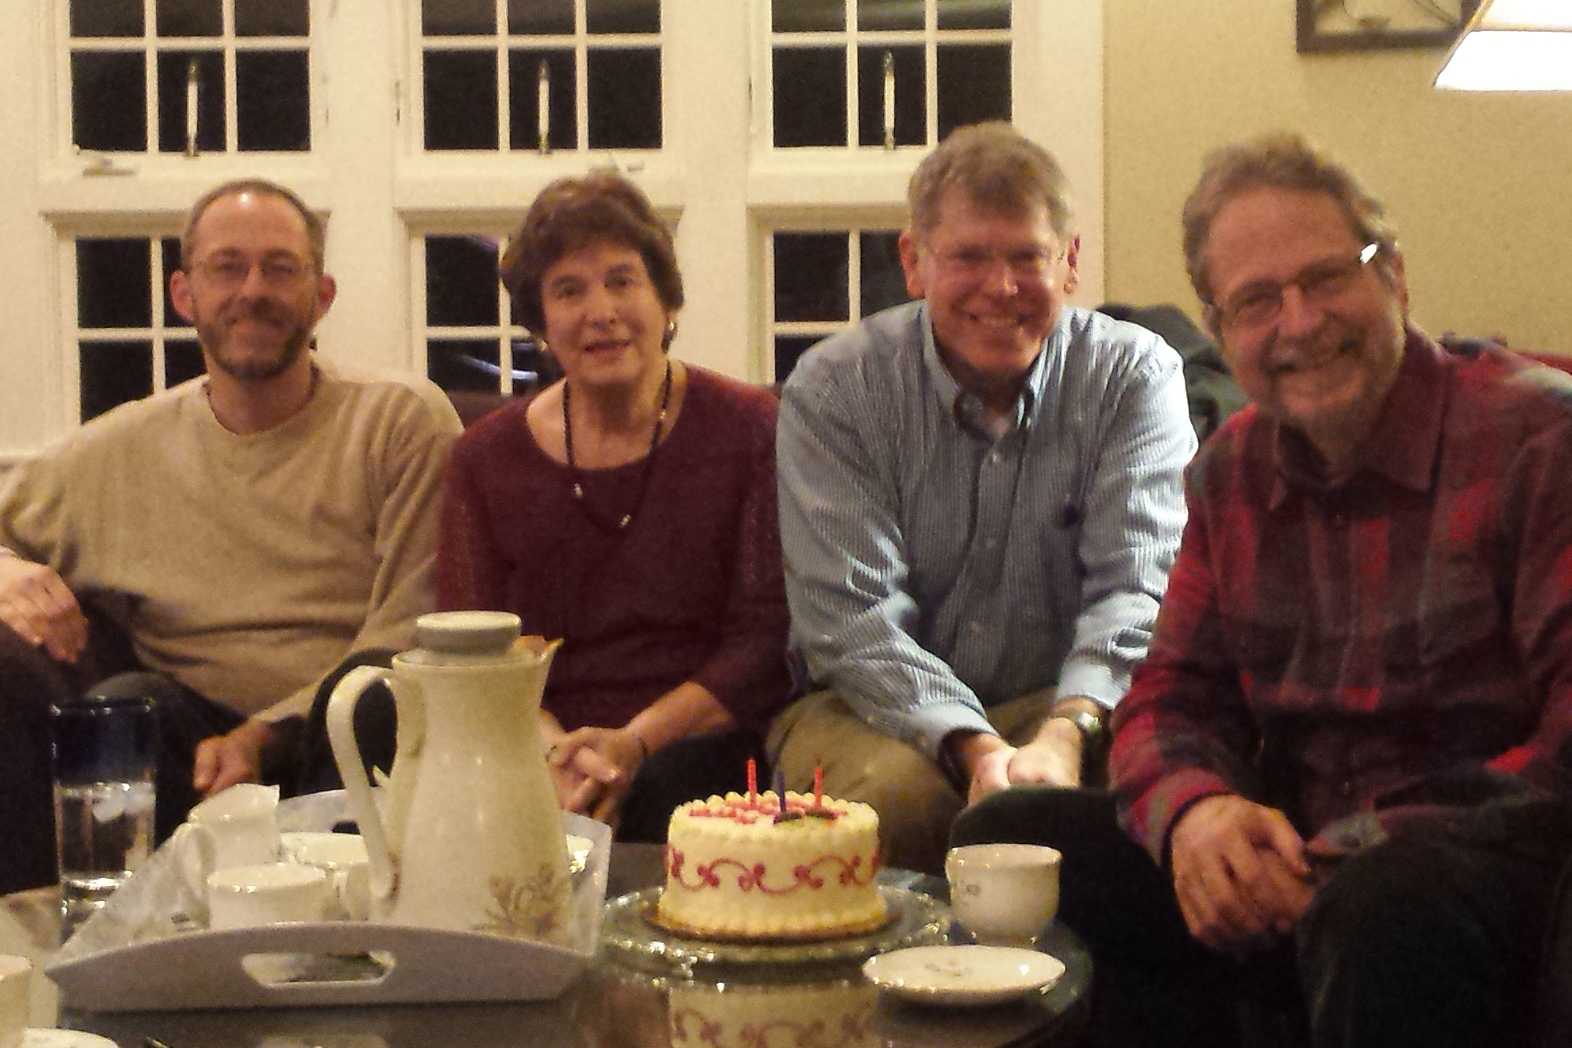 New Life Community Church Leaders at Birthday Meeting